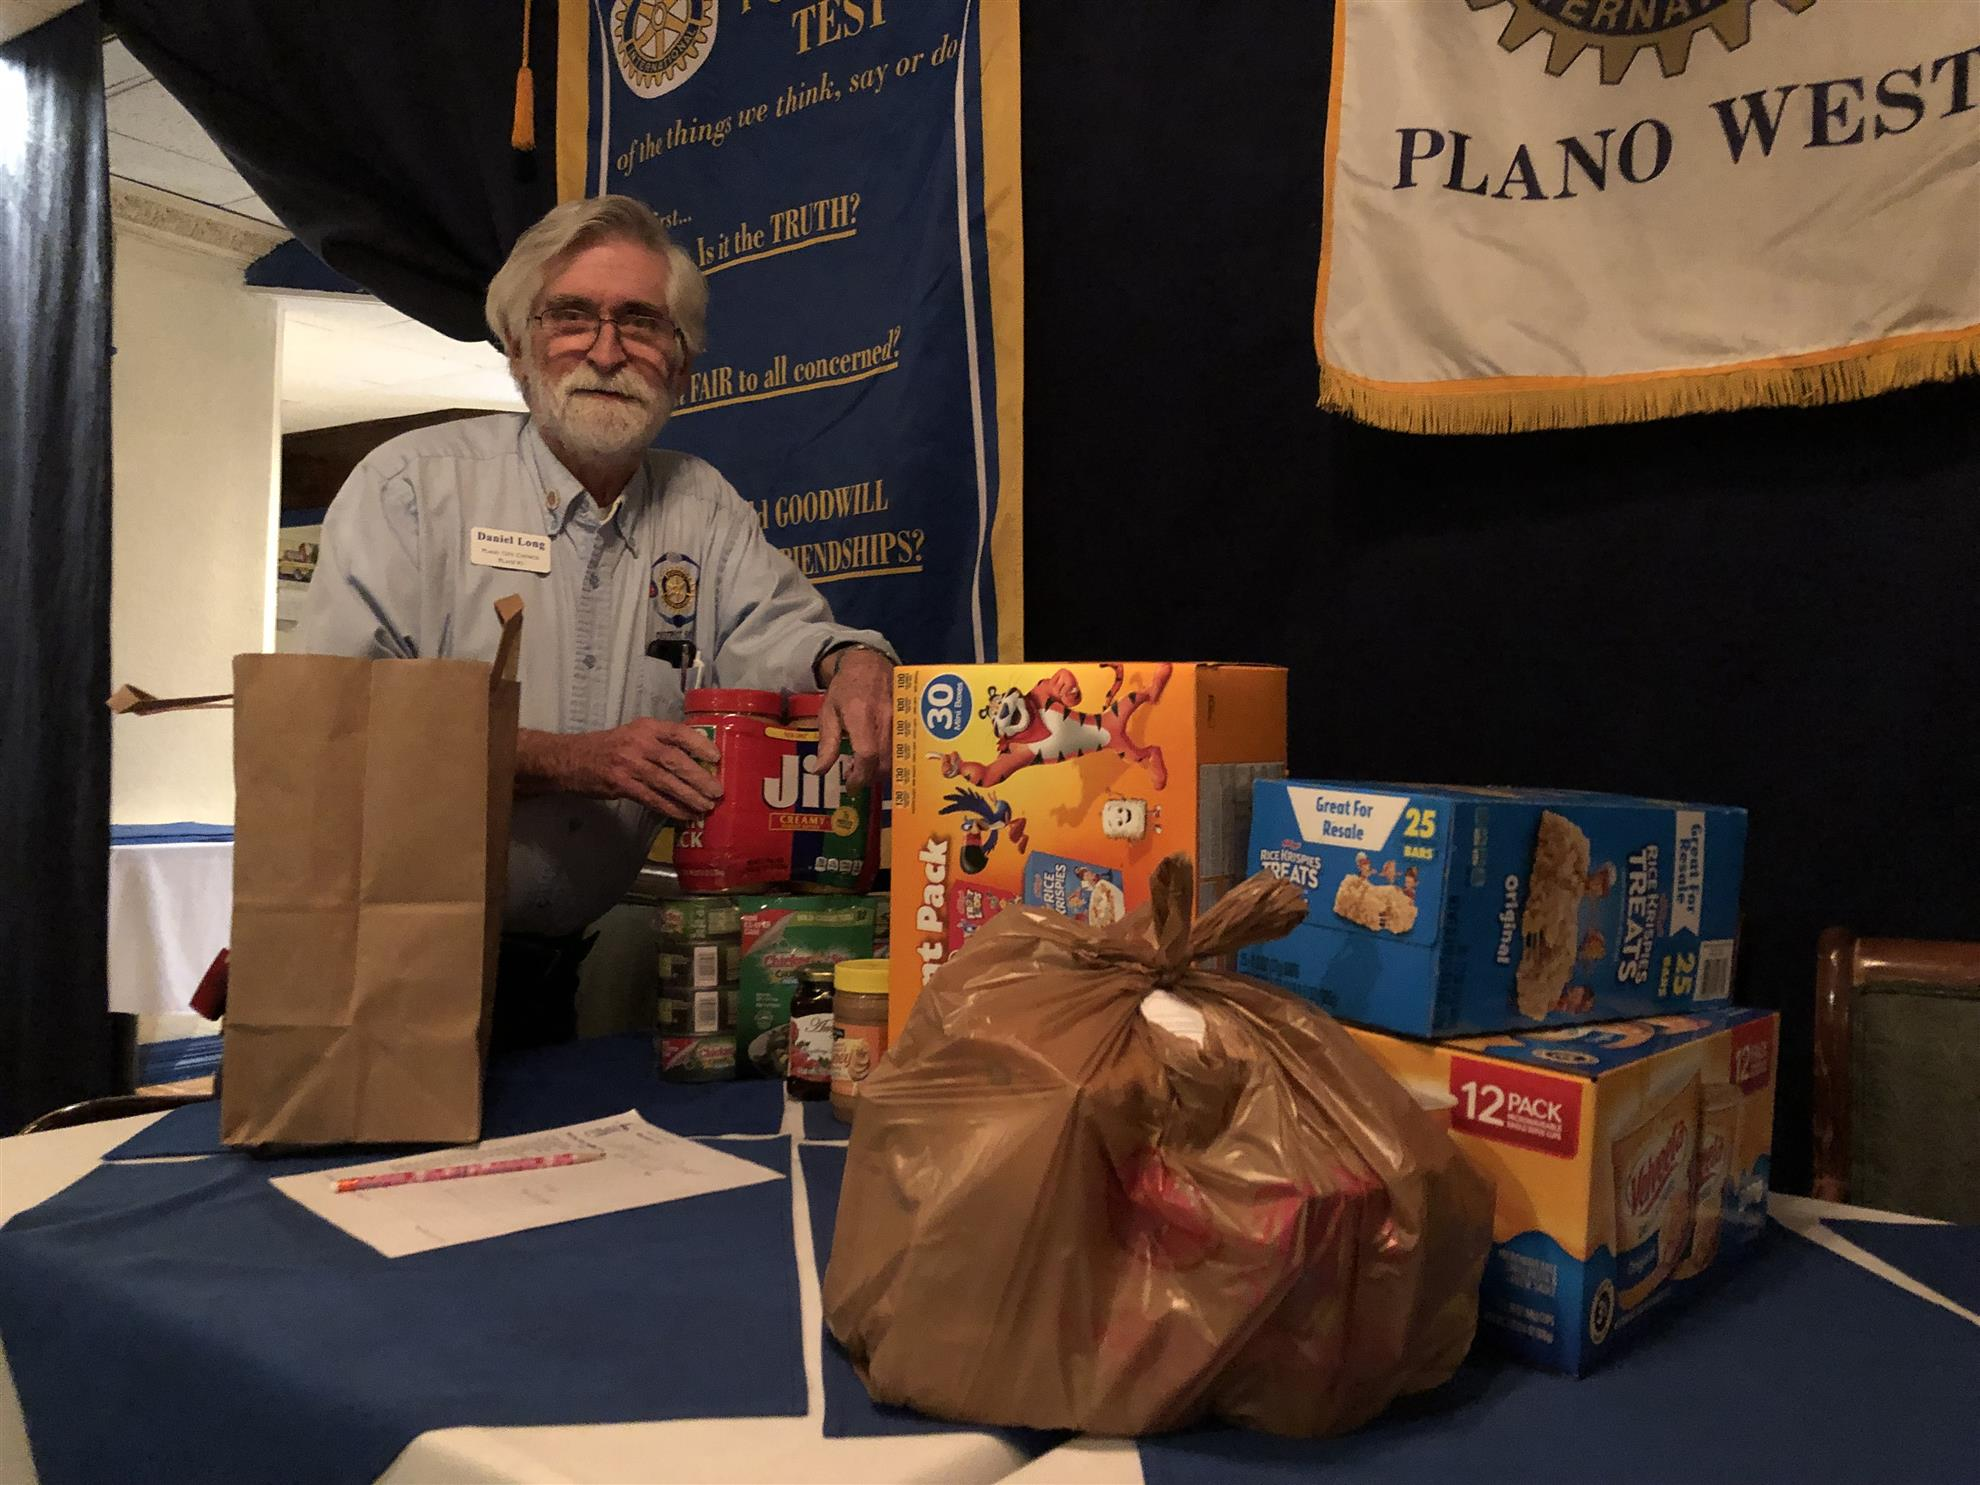 Stories | Rotary Club of Plano West